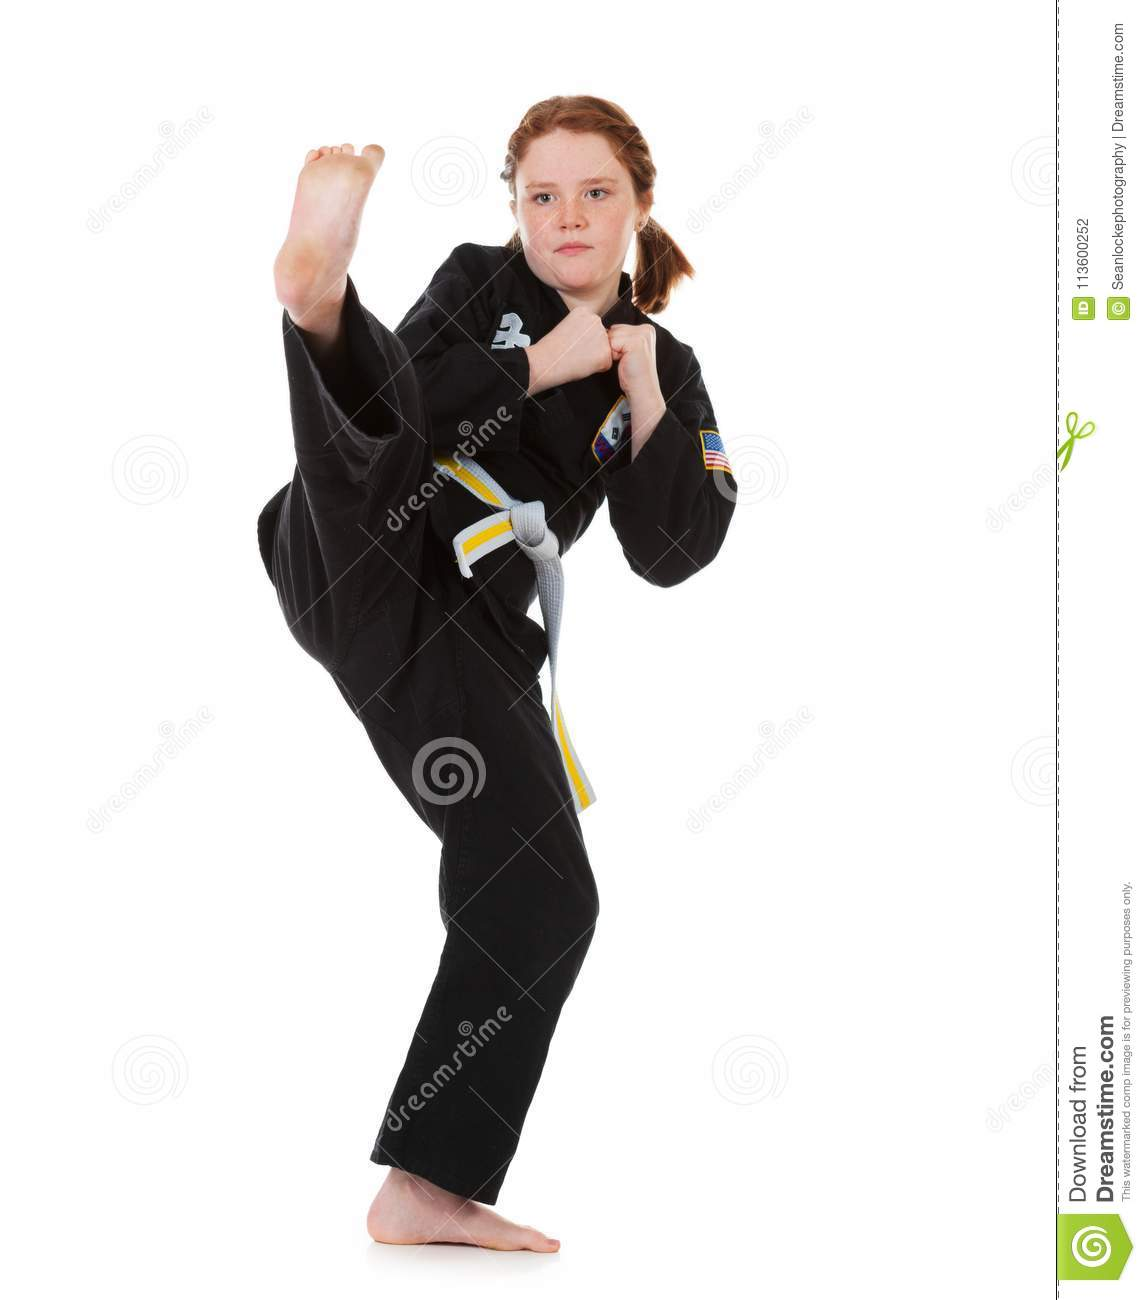 Karate: Confident Girl Does A Front Kick Stock Photo ...